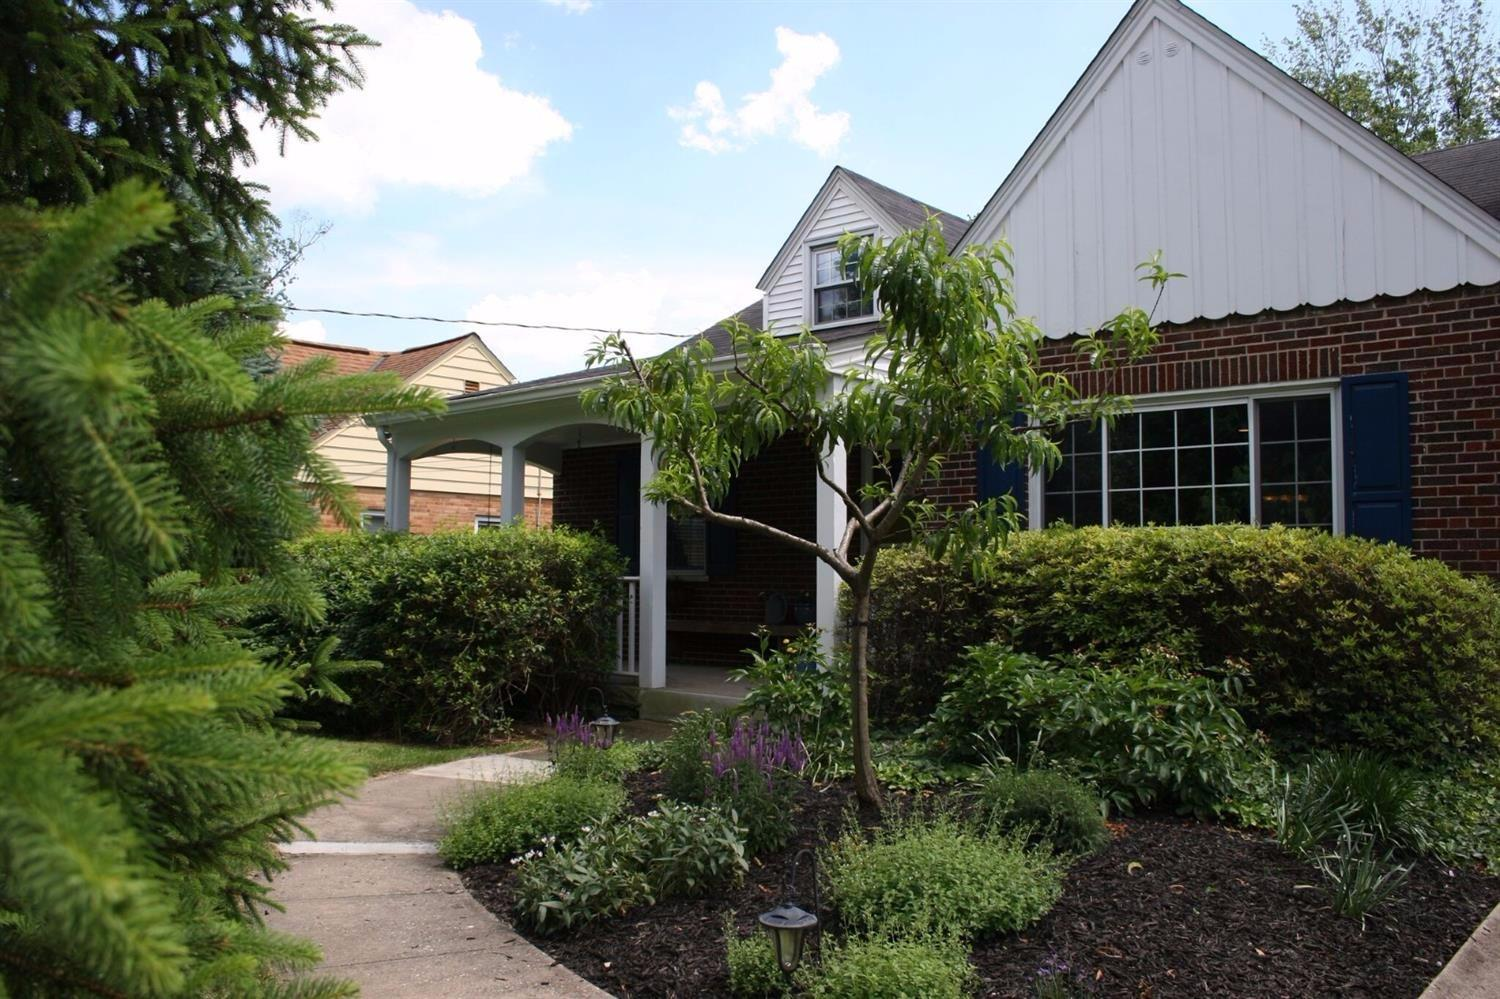 6475 Euclid Ave Madeira Oh 45243 Listing Details Mls